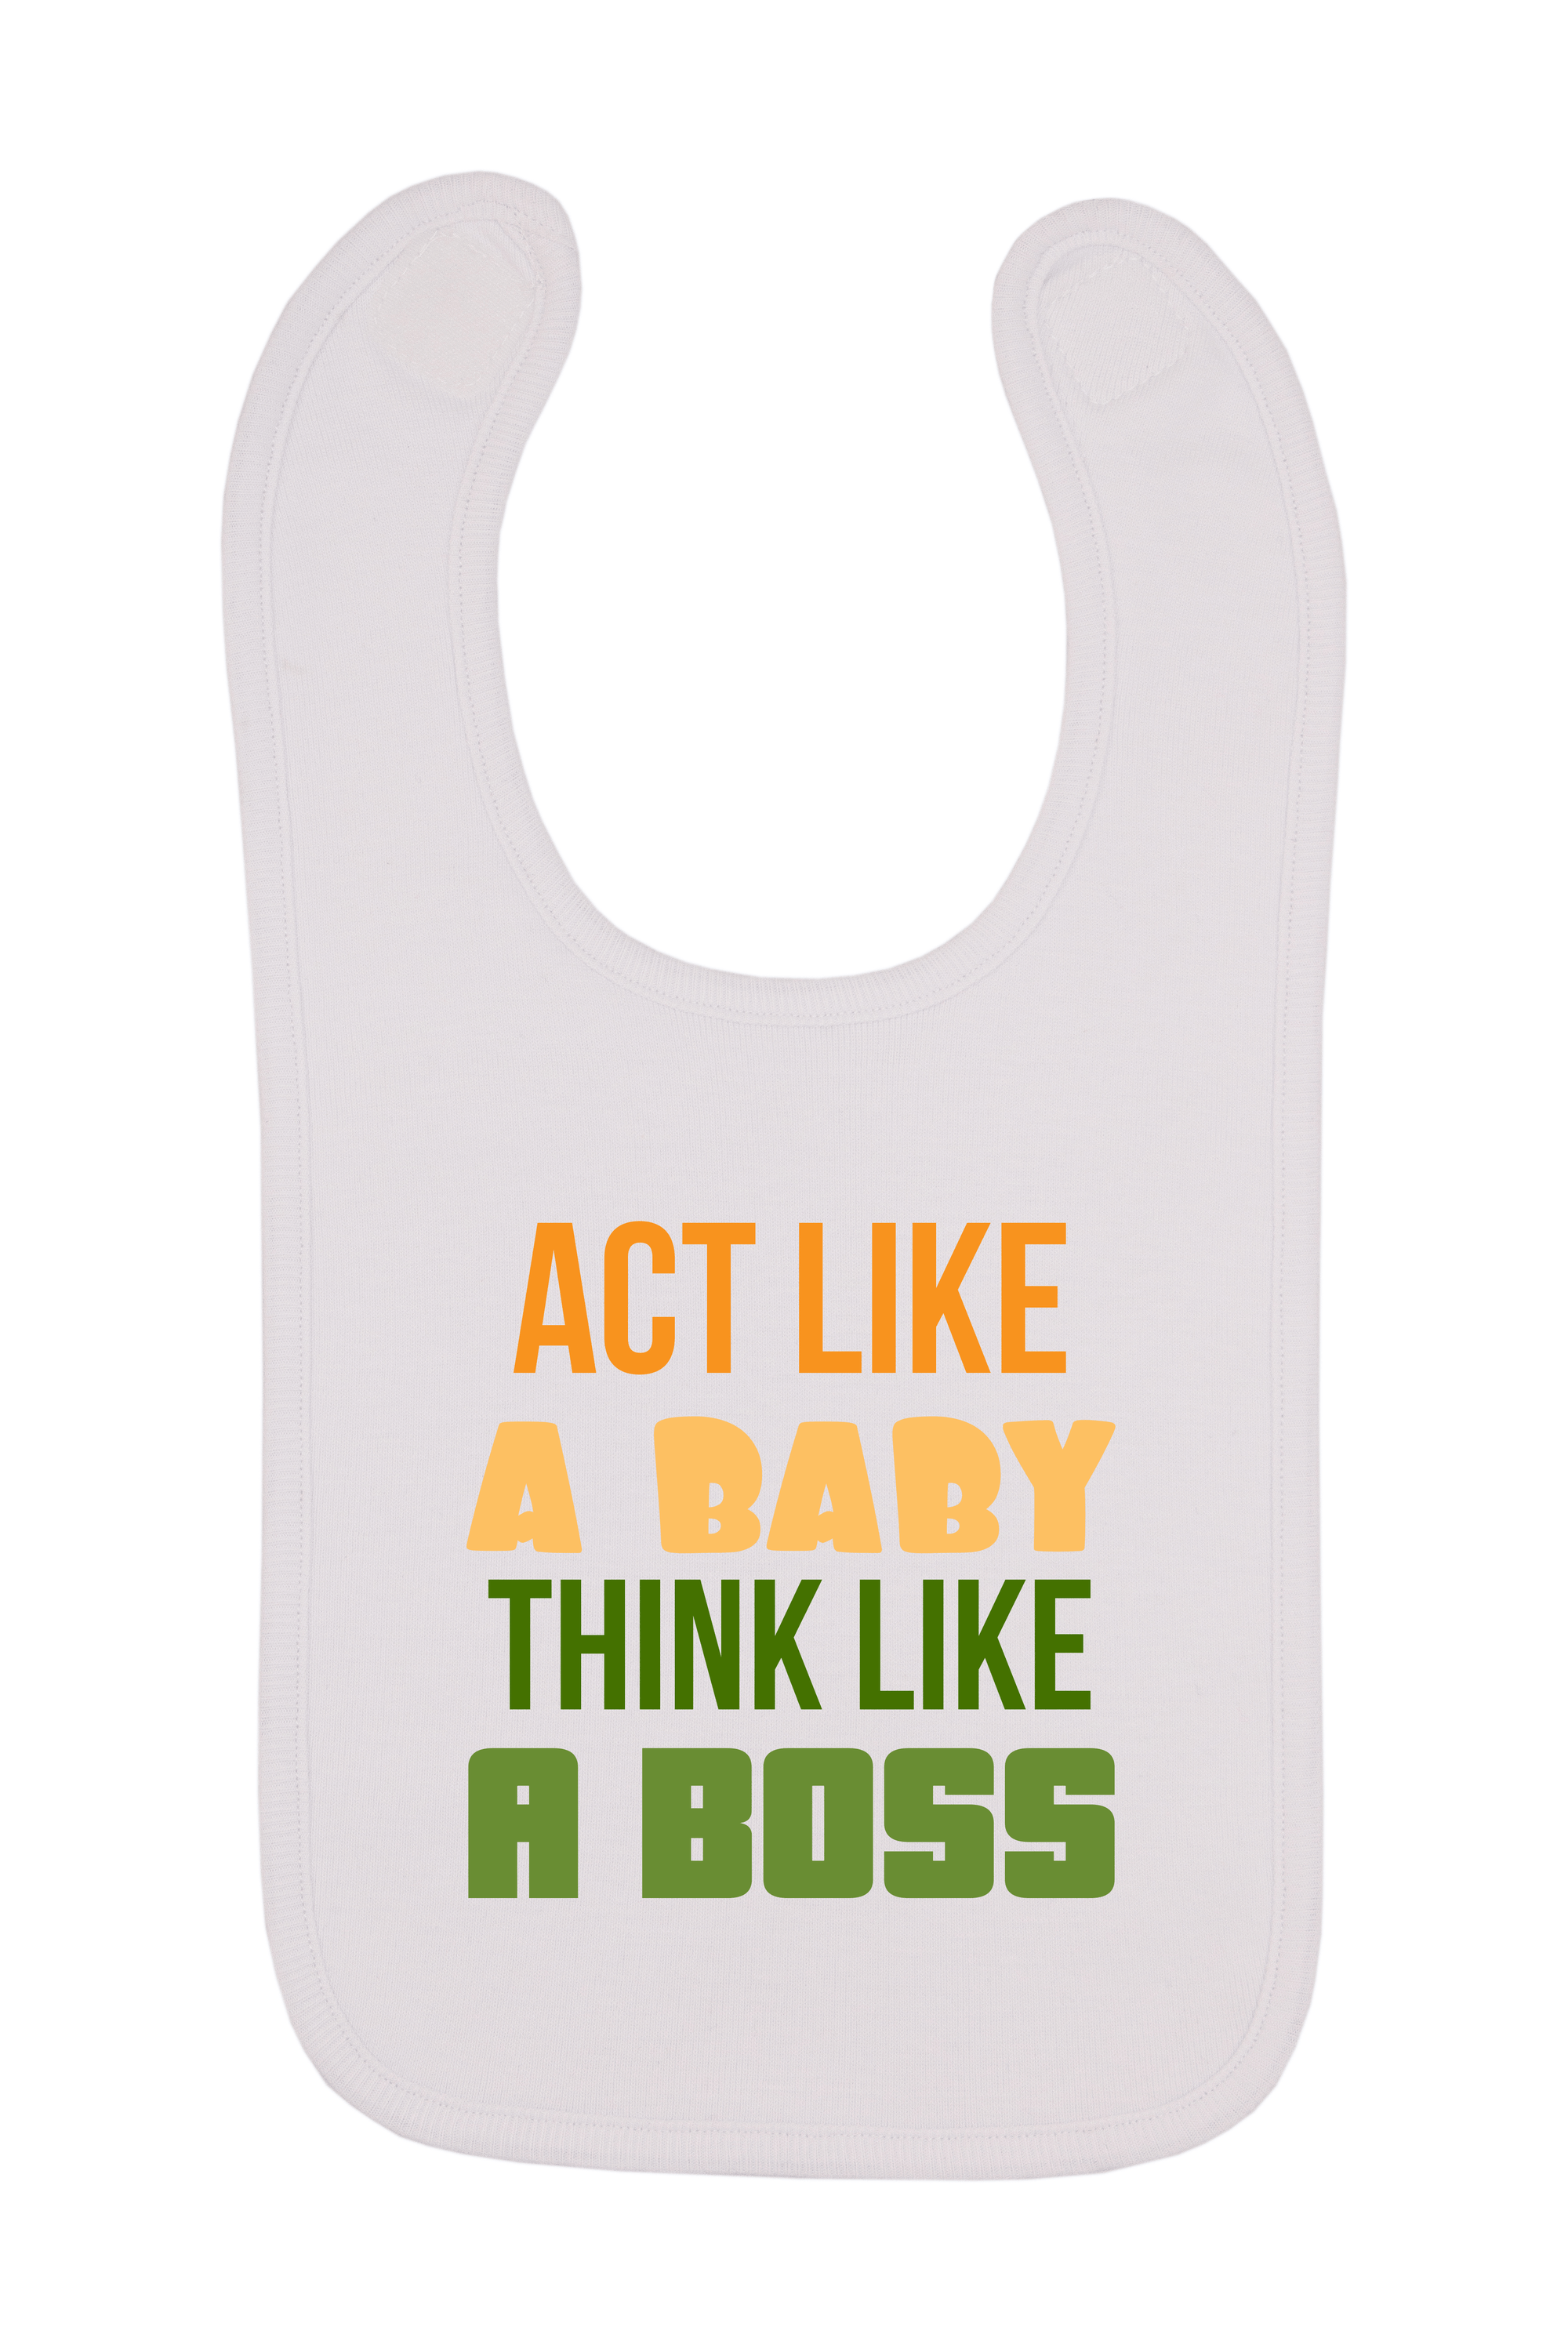 Act Like A Baby Think Like A Boss Baby Bib, 0-24 Months